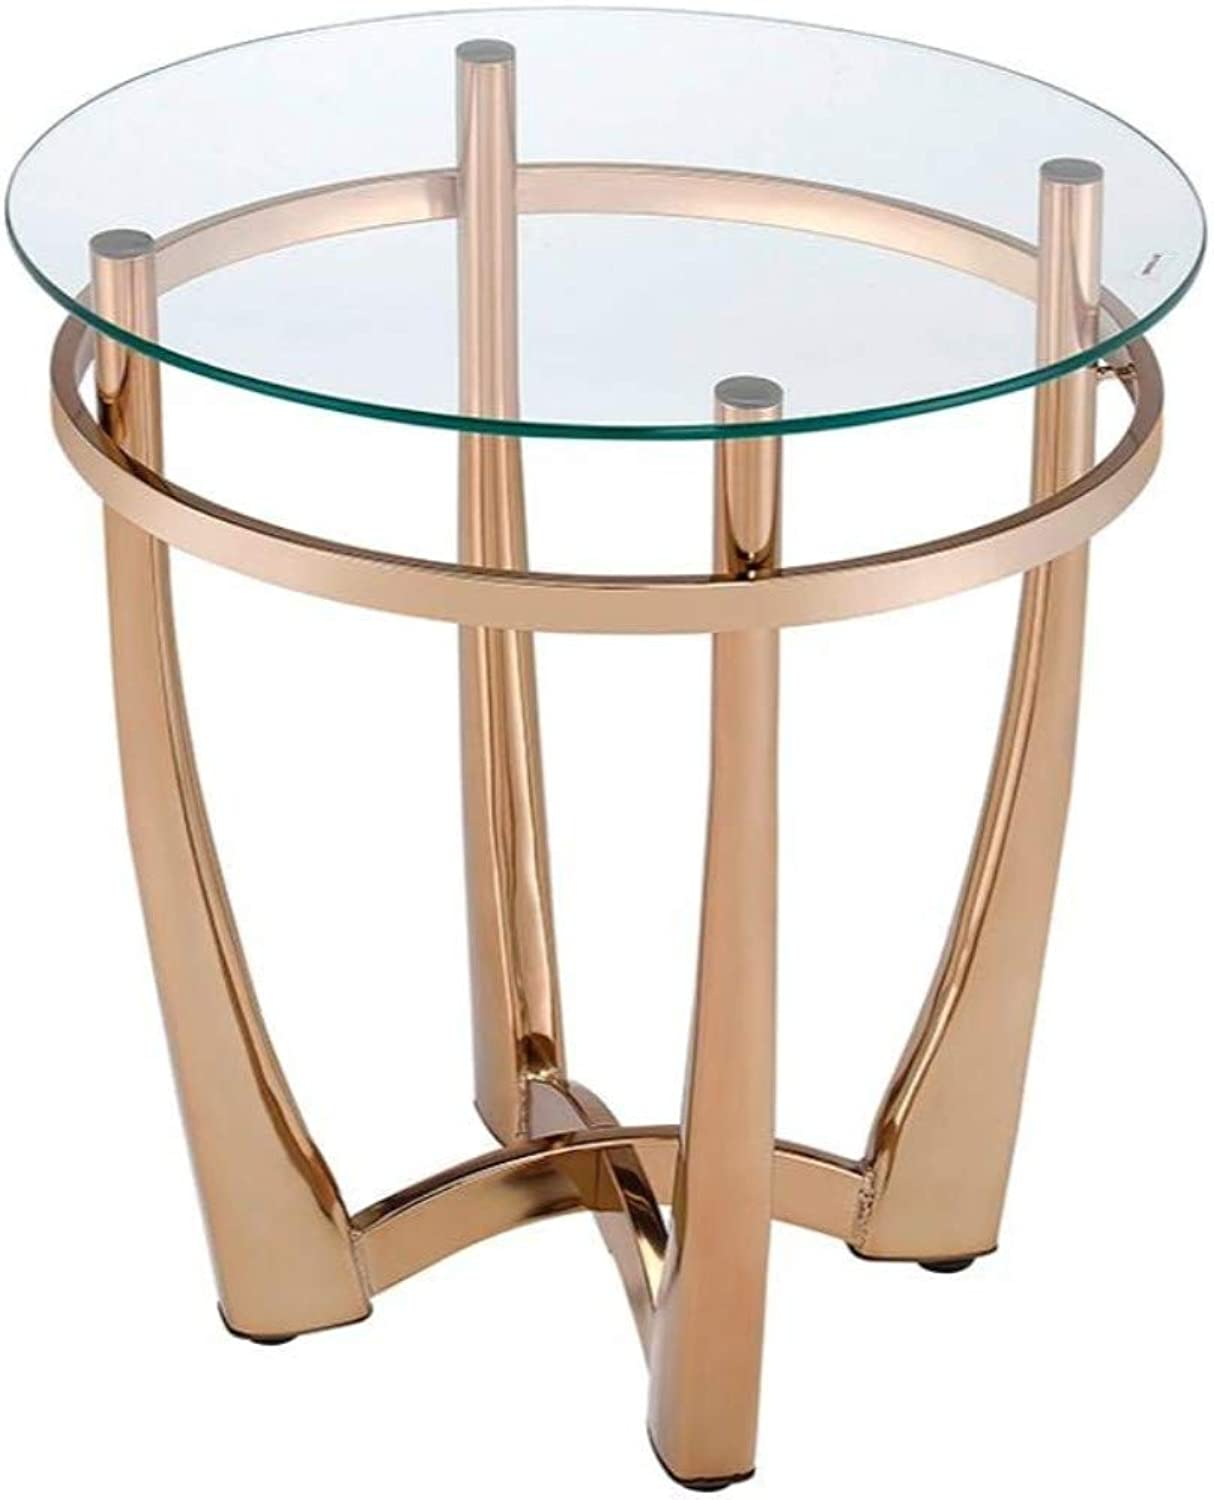 Benzara BM185777 Metal End Table with Glass Top, Champagne Finish